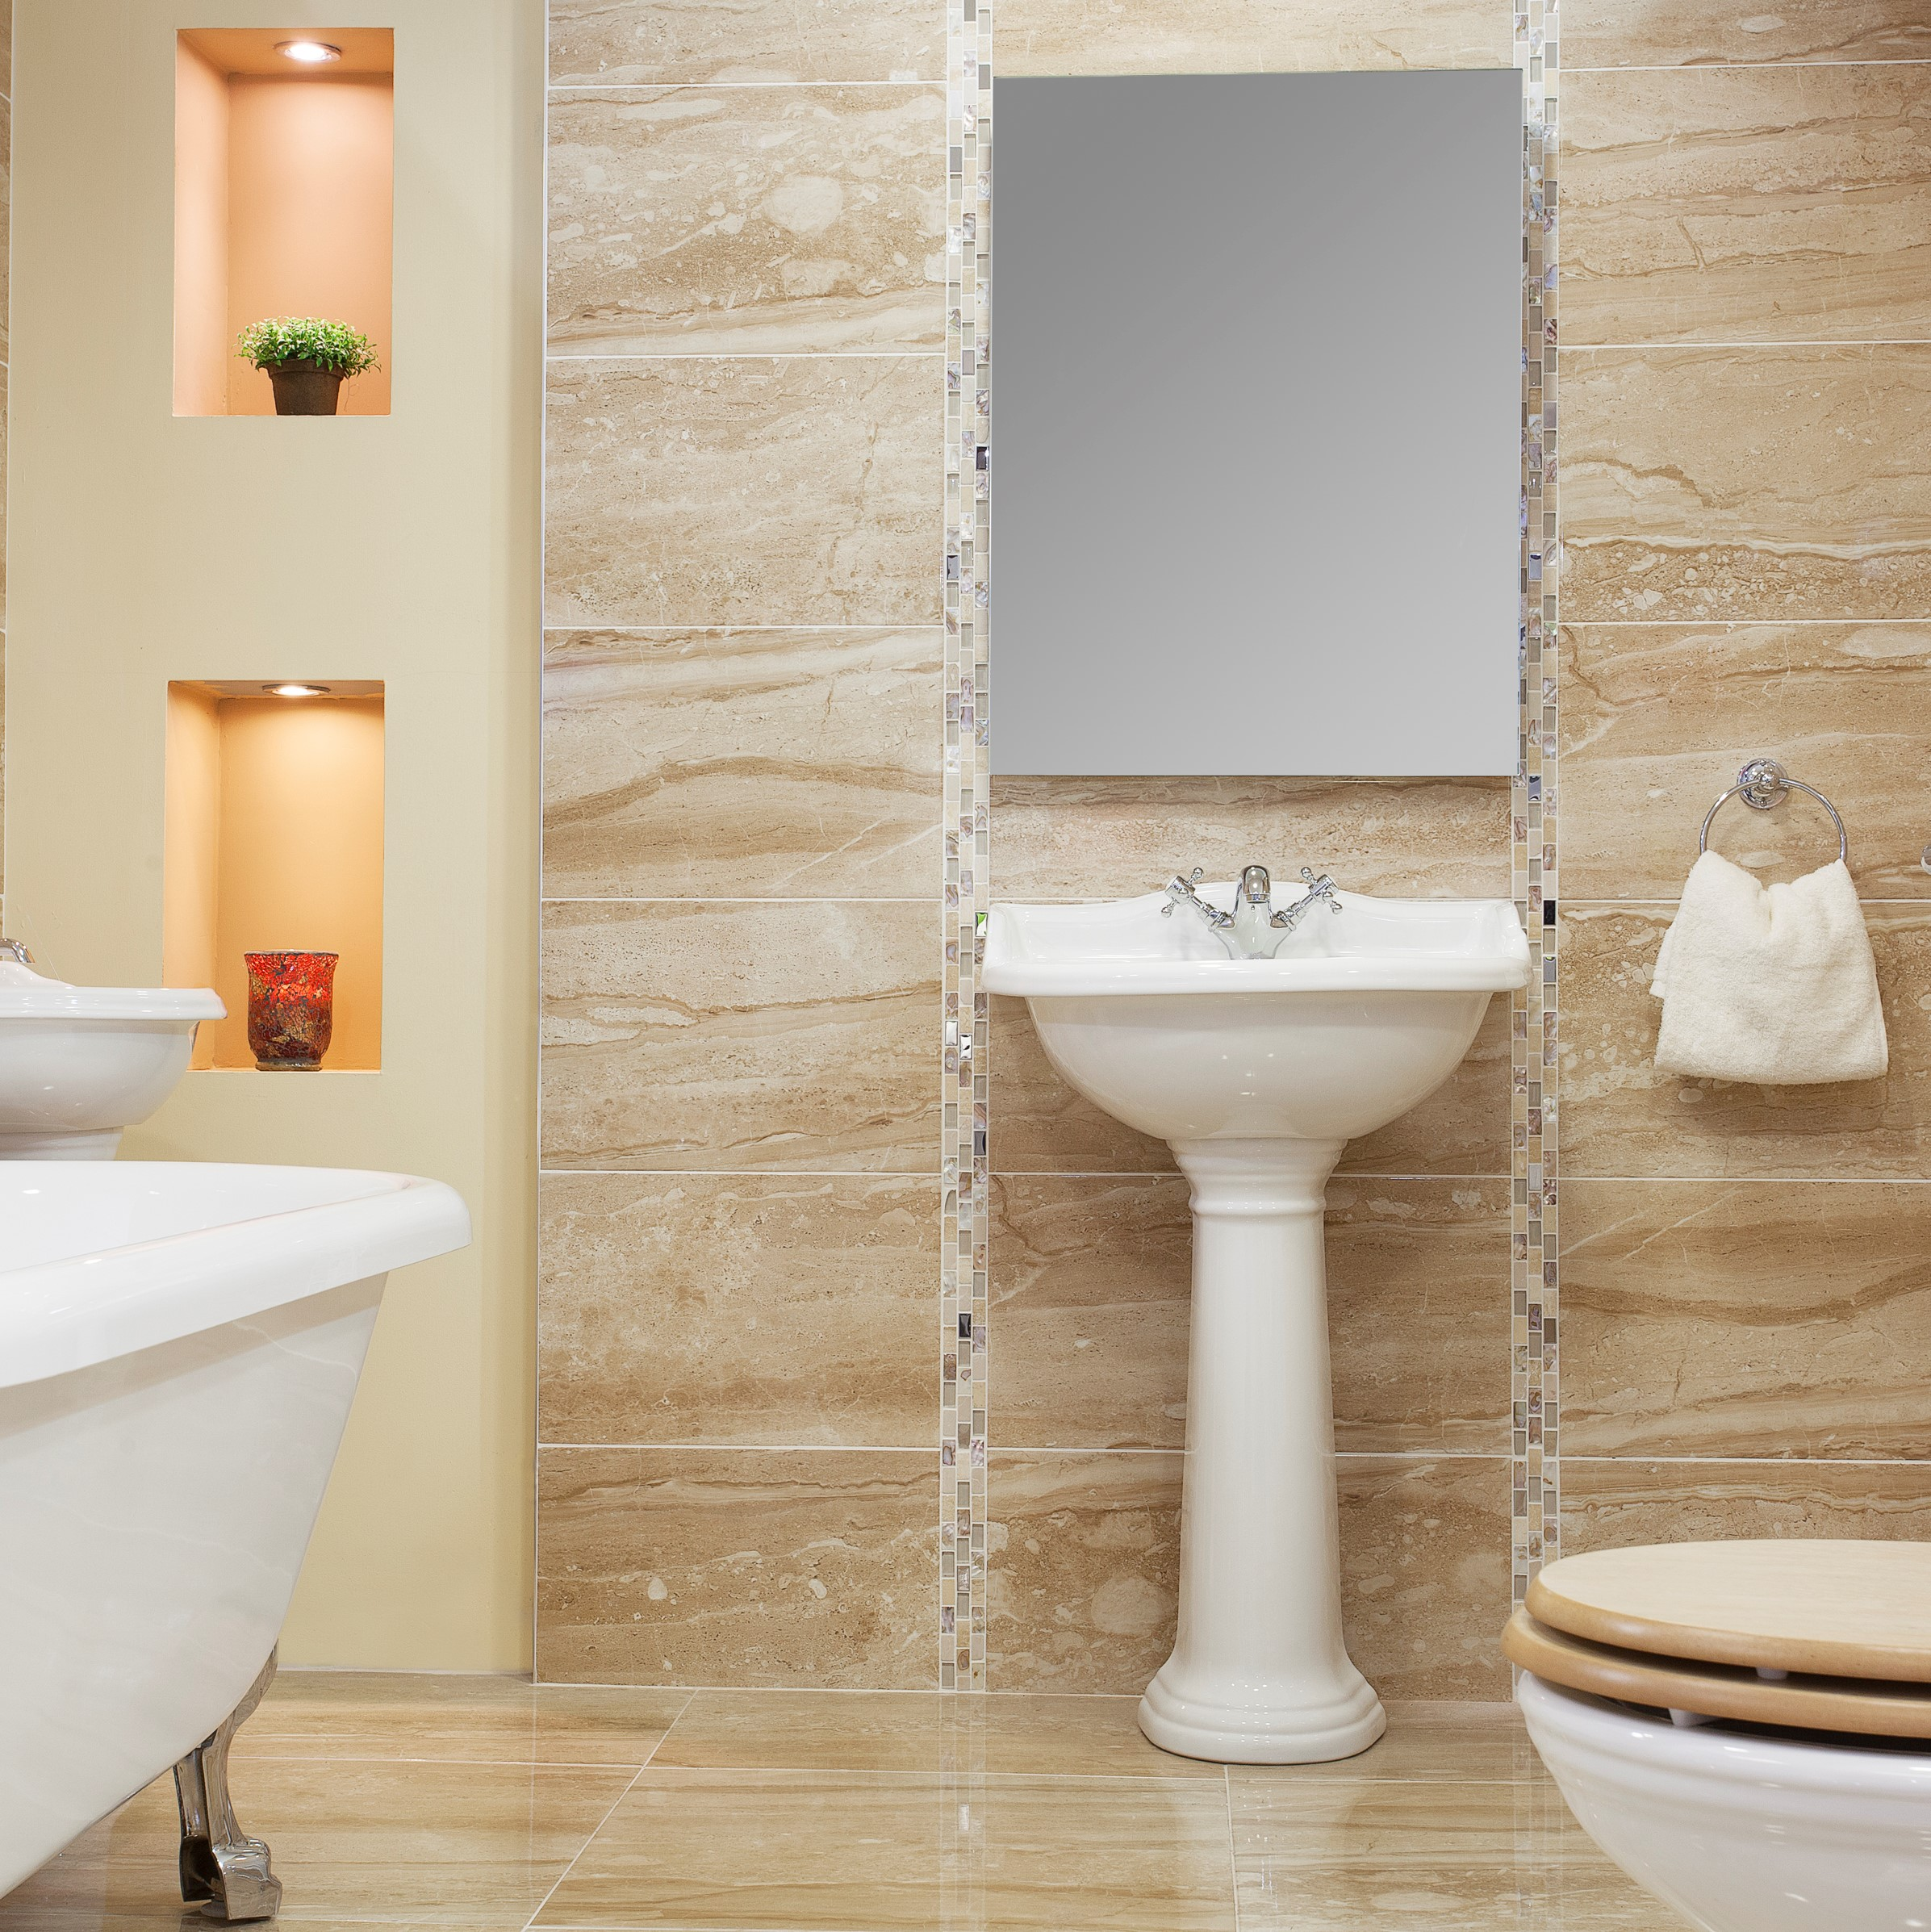 Victoria Natural Tiles O'Connor Carroll Tiles & Bathrooms Dublin